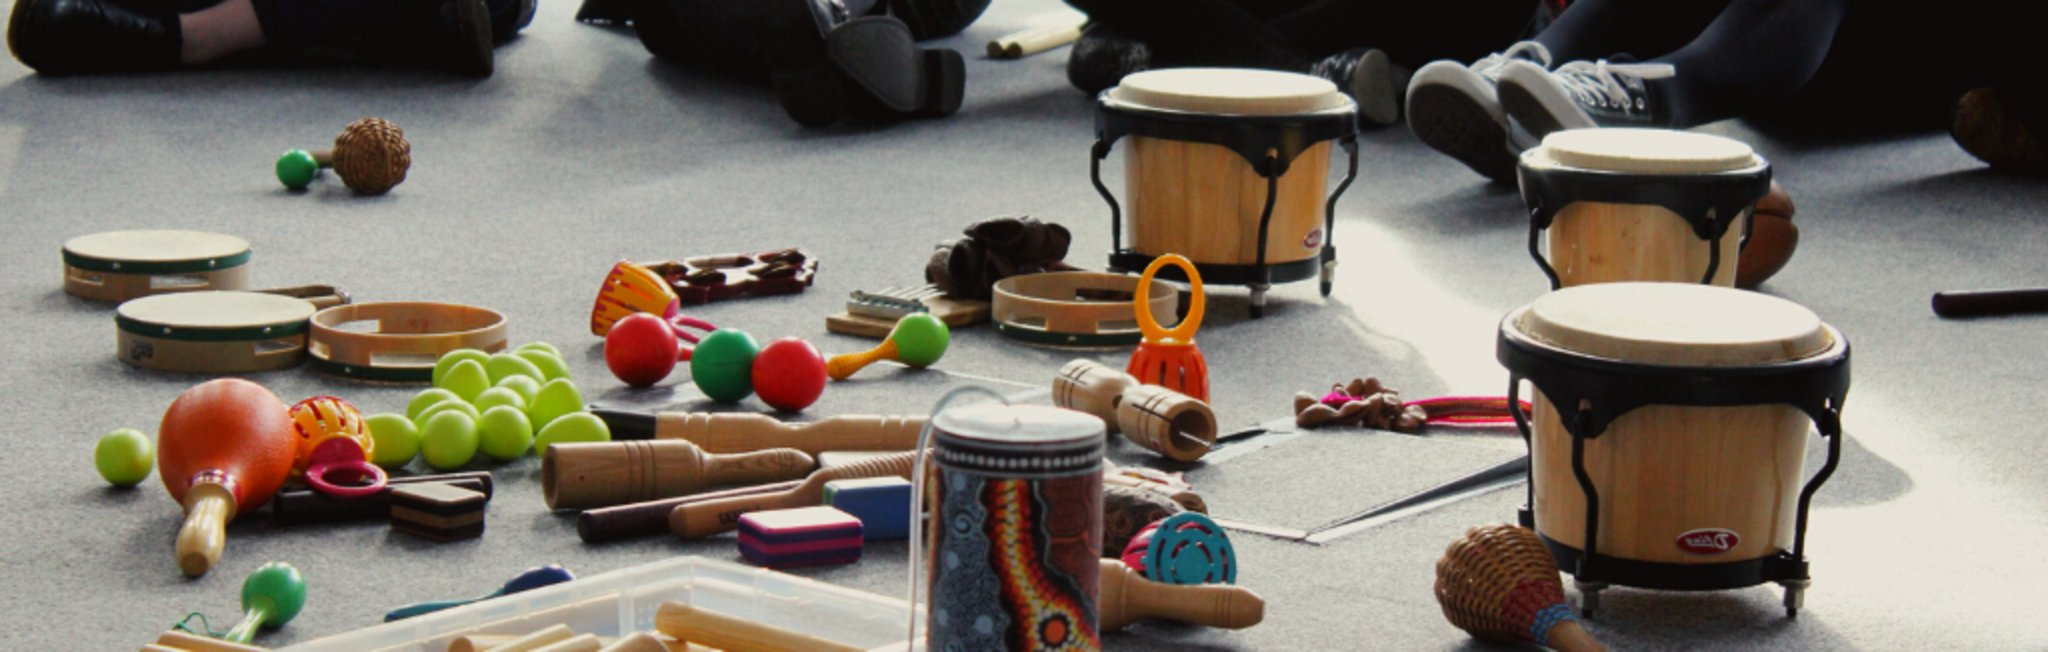 Early Years instruments